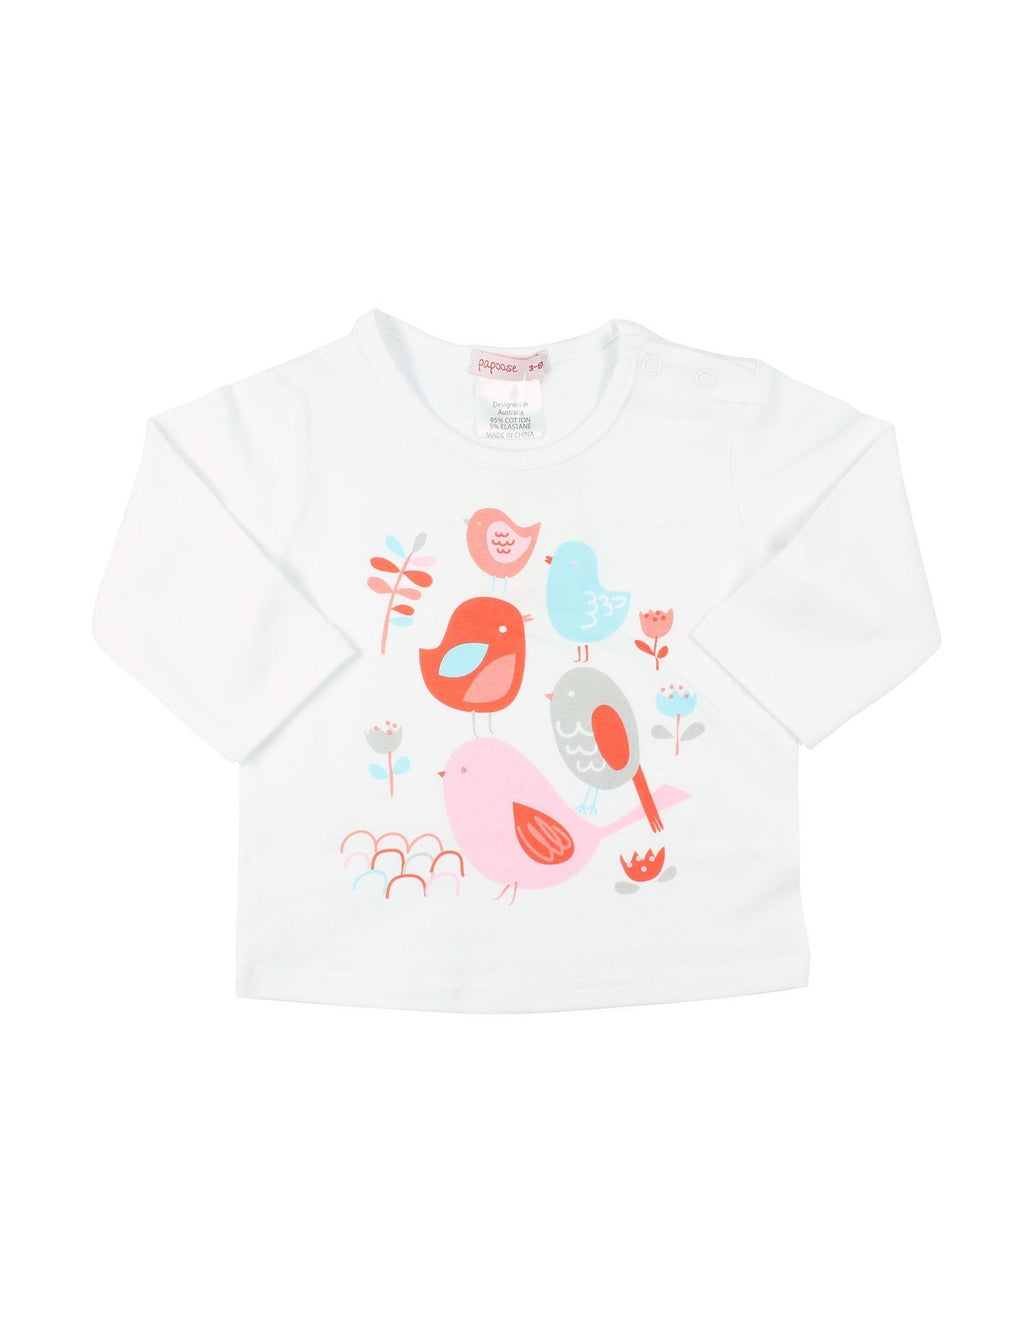 Papoose AW16 Little Girls Birdie Top - White